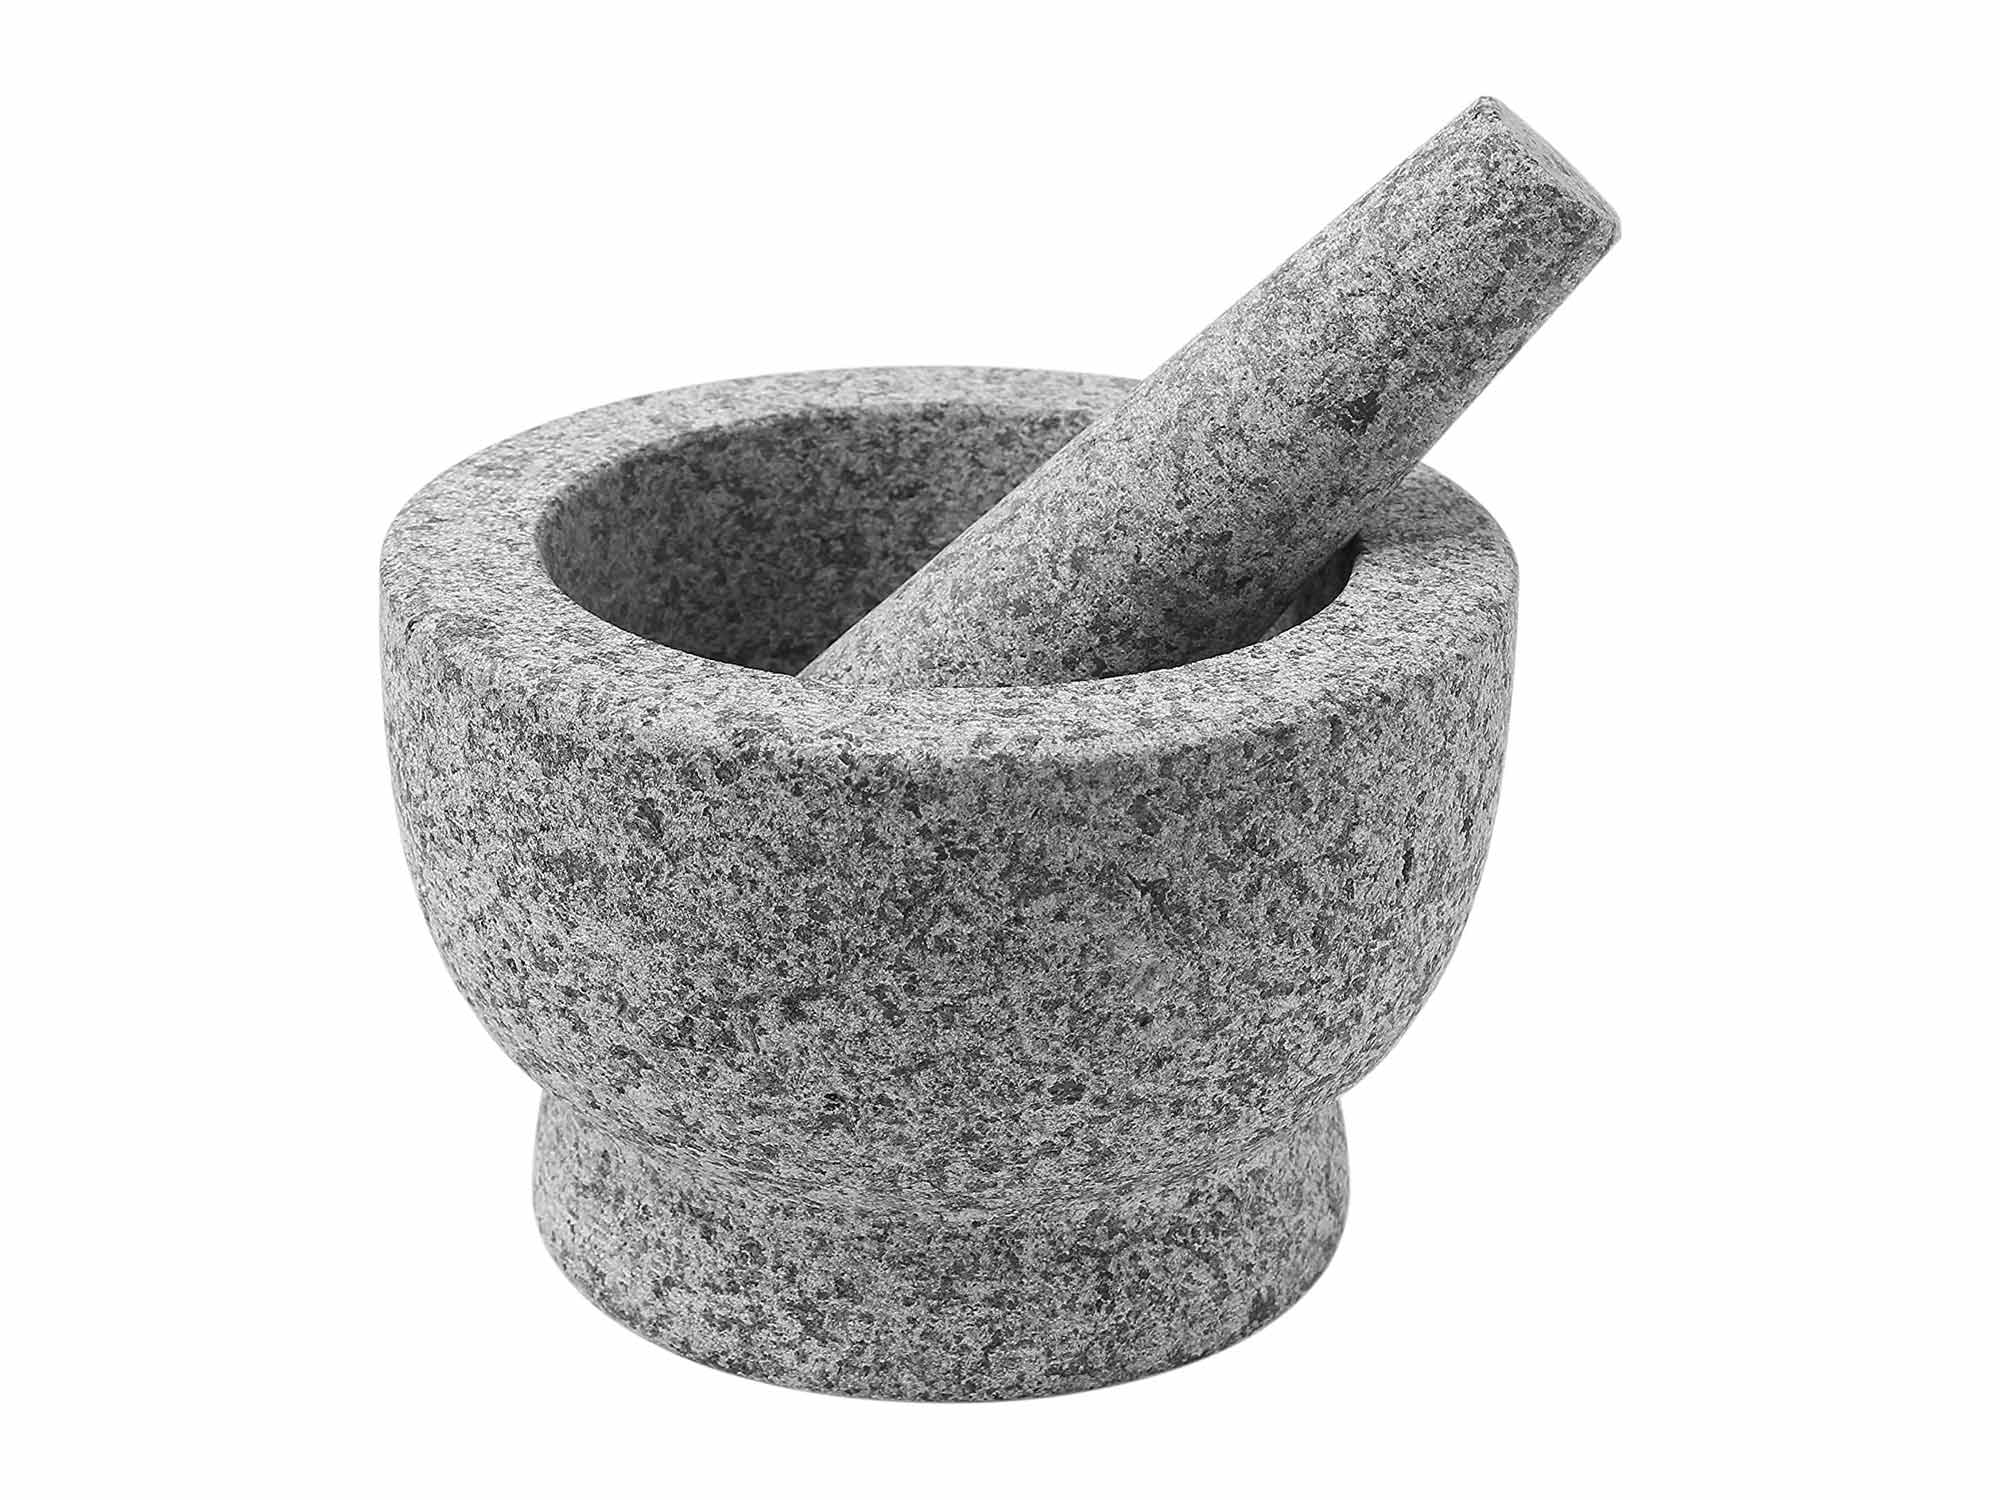 ChefSofi Mortar and Pestle Set - 6 Inch - 2 Cup Capacity - Unpolished Heavy Granite for Enhanced Performance and Organic Appearance - INCLUDED: Anti-Scratch Protector + Italian Recipes EBook